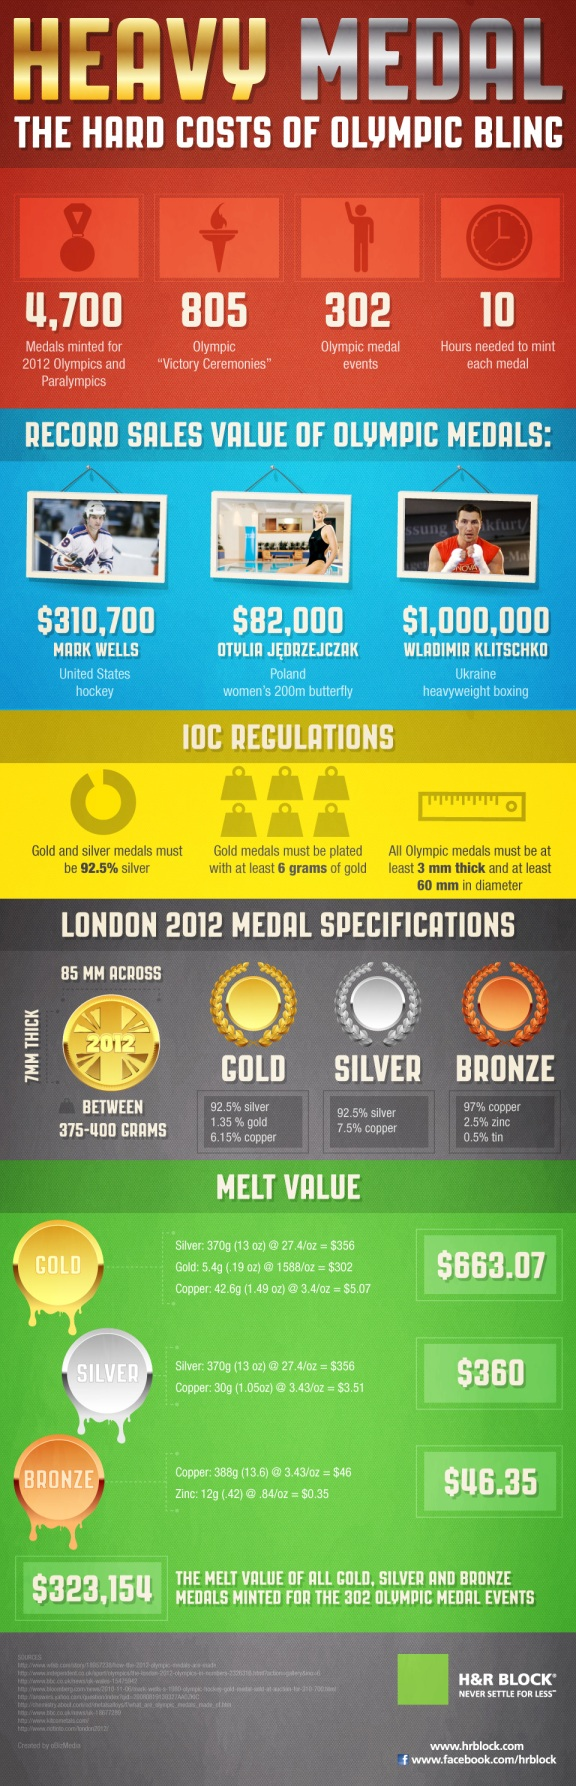 Olympic Bling Comes with some tough tax consequences